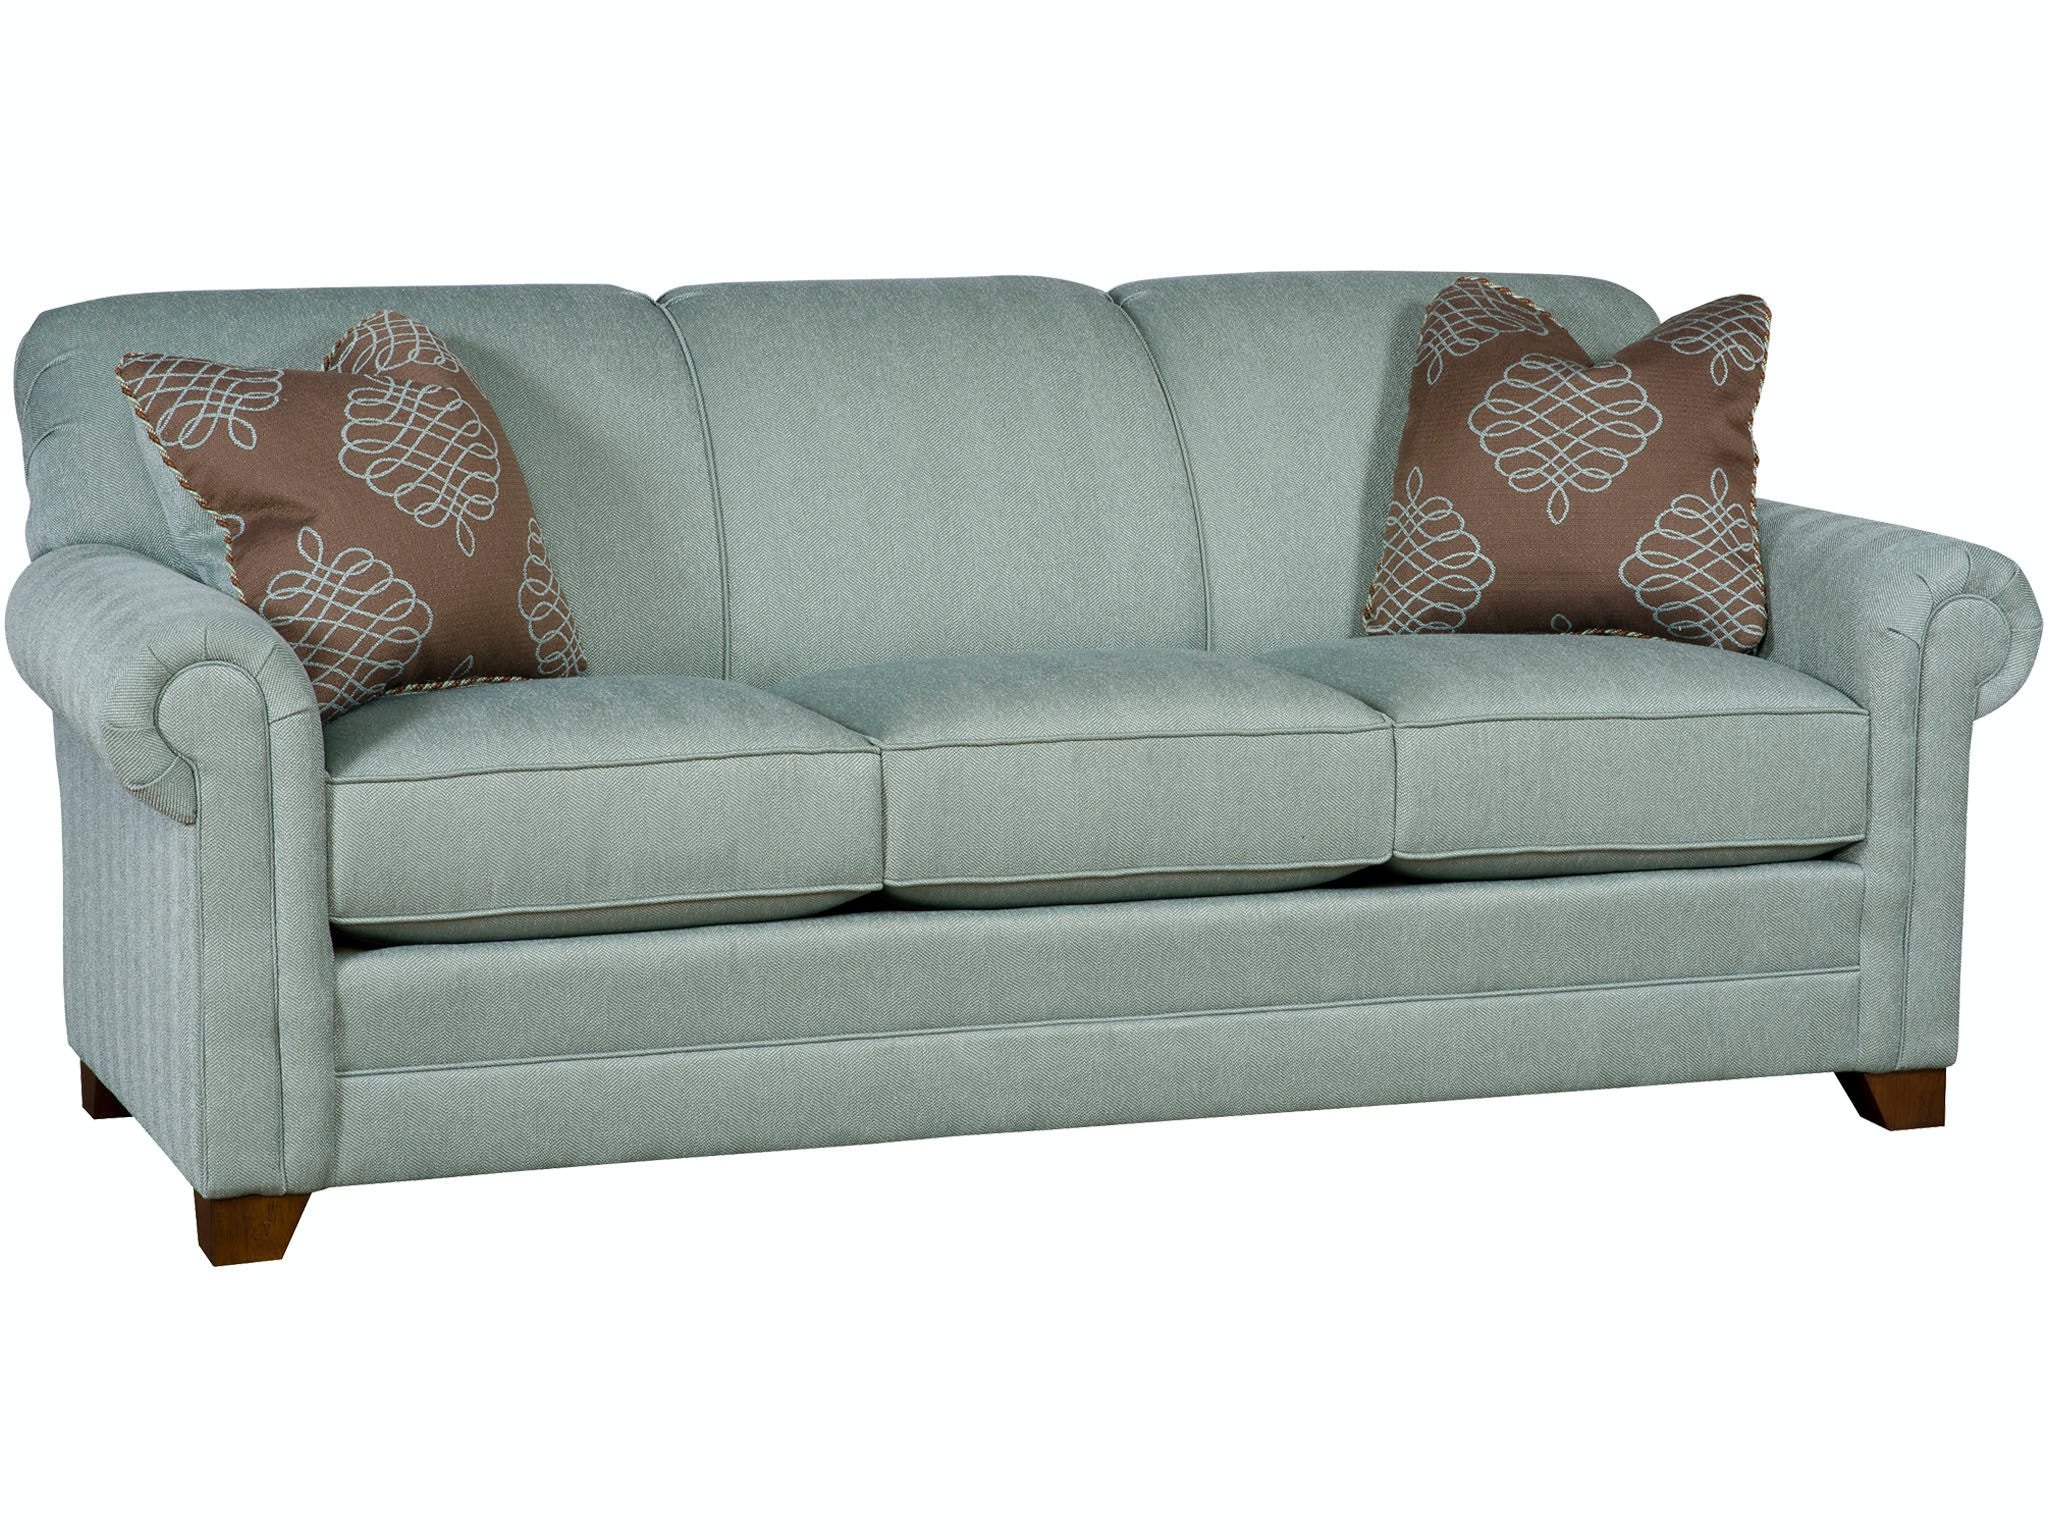 Merveilleux King Hickory Living Room Angelina Sofa